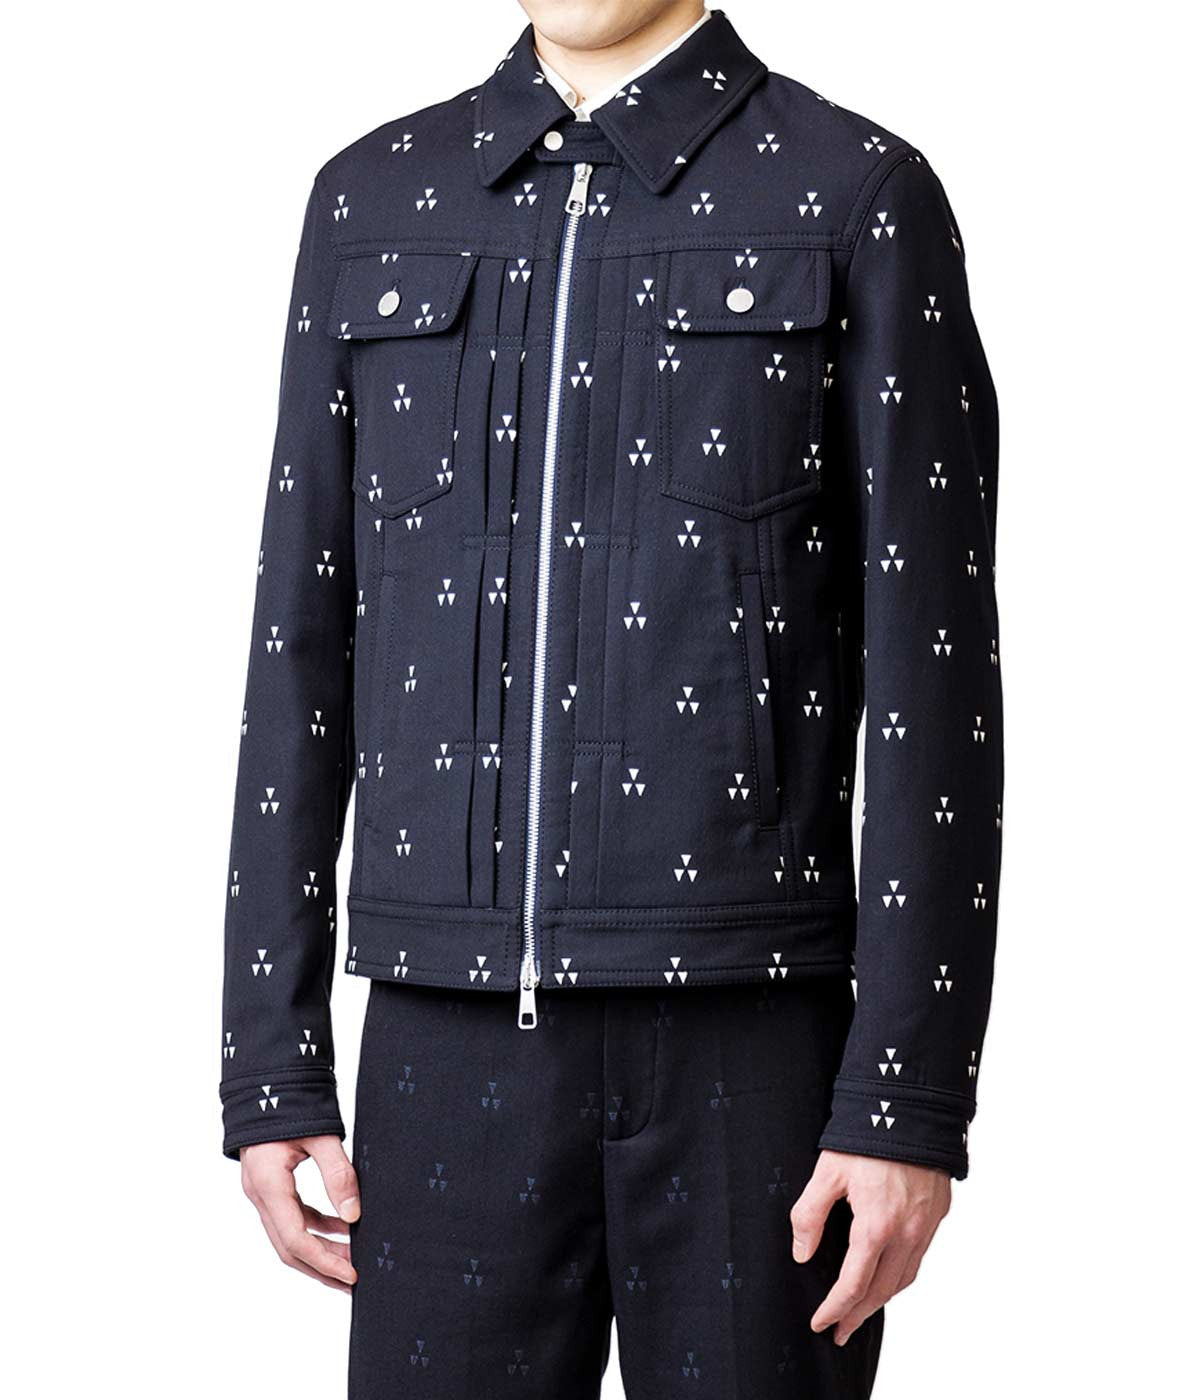 Geometric Jacquard Jacket